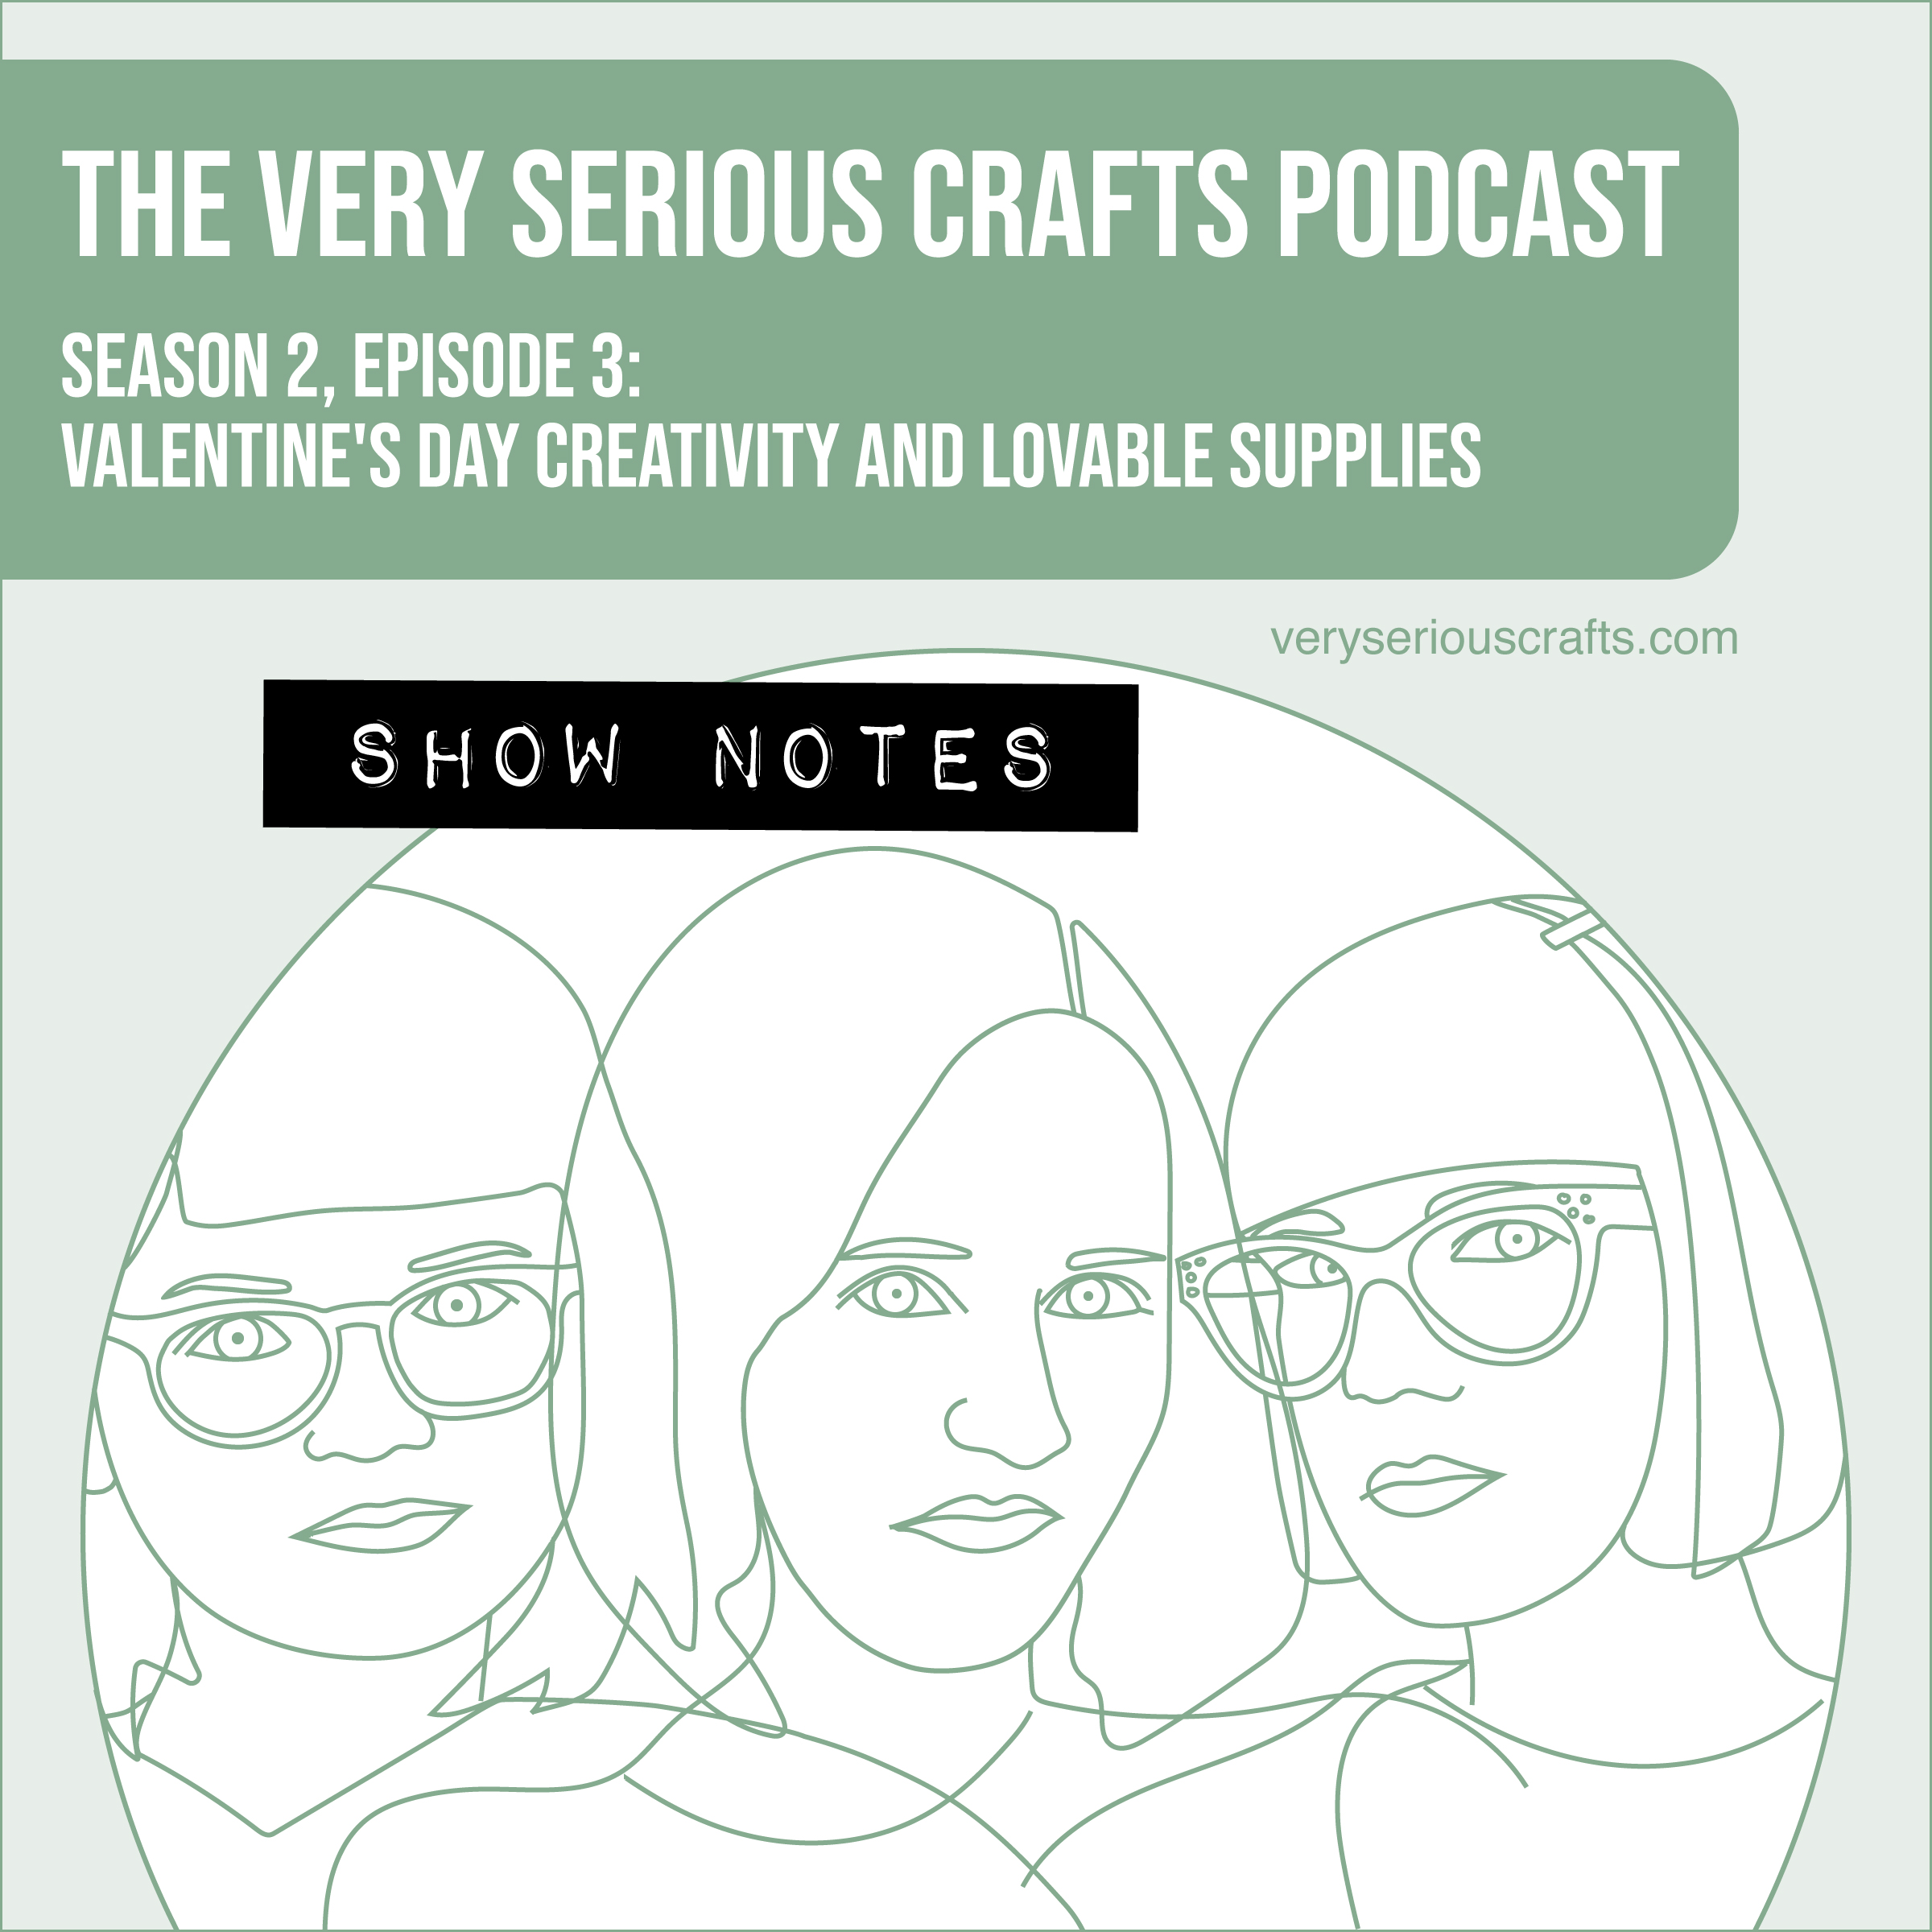 The Very Serious Crafts Podcast, Season 2: Episode 3 – Show Notes